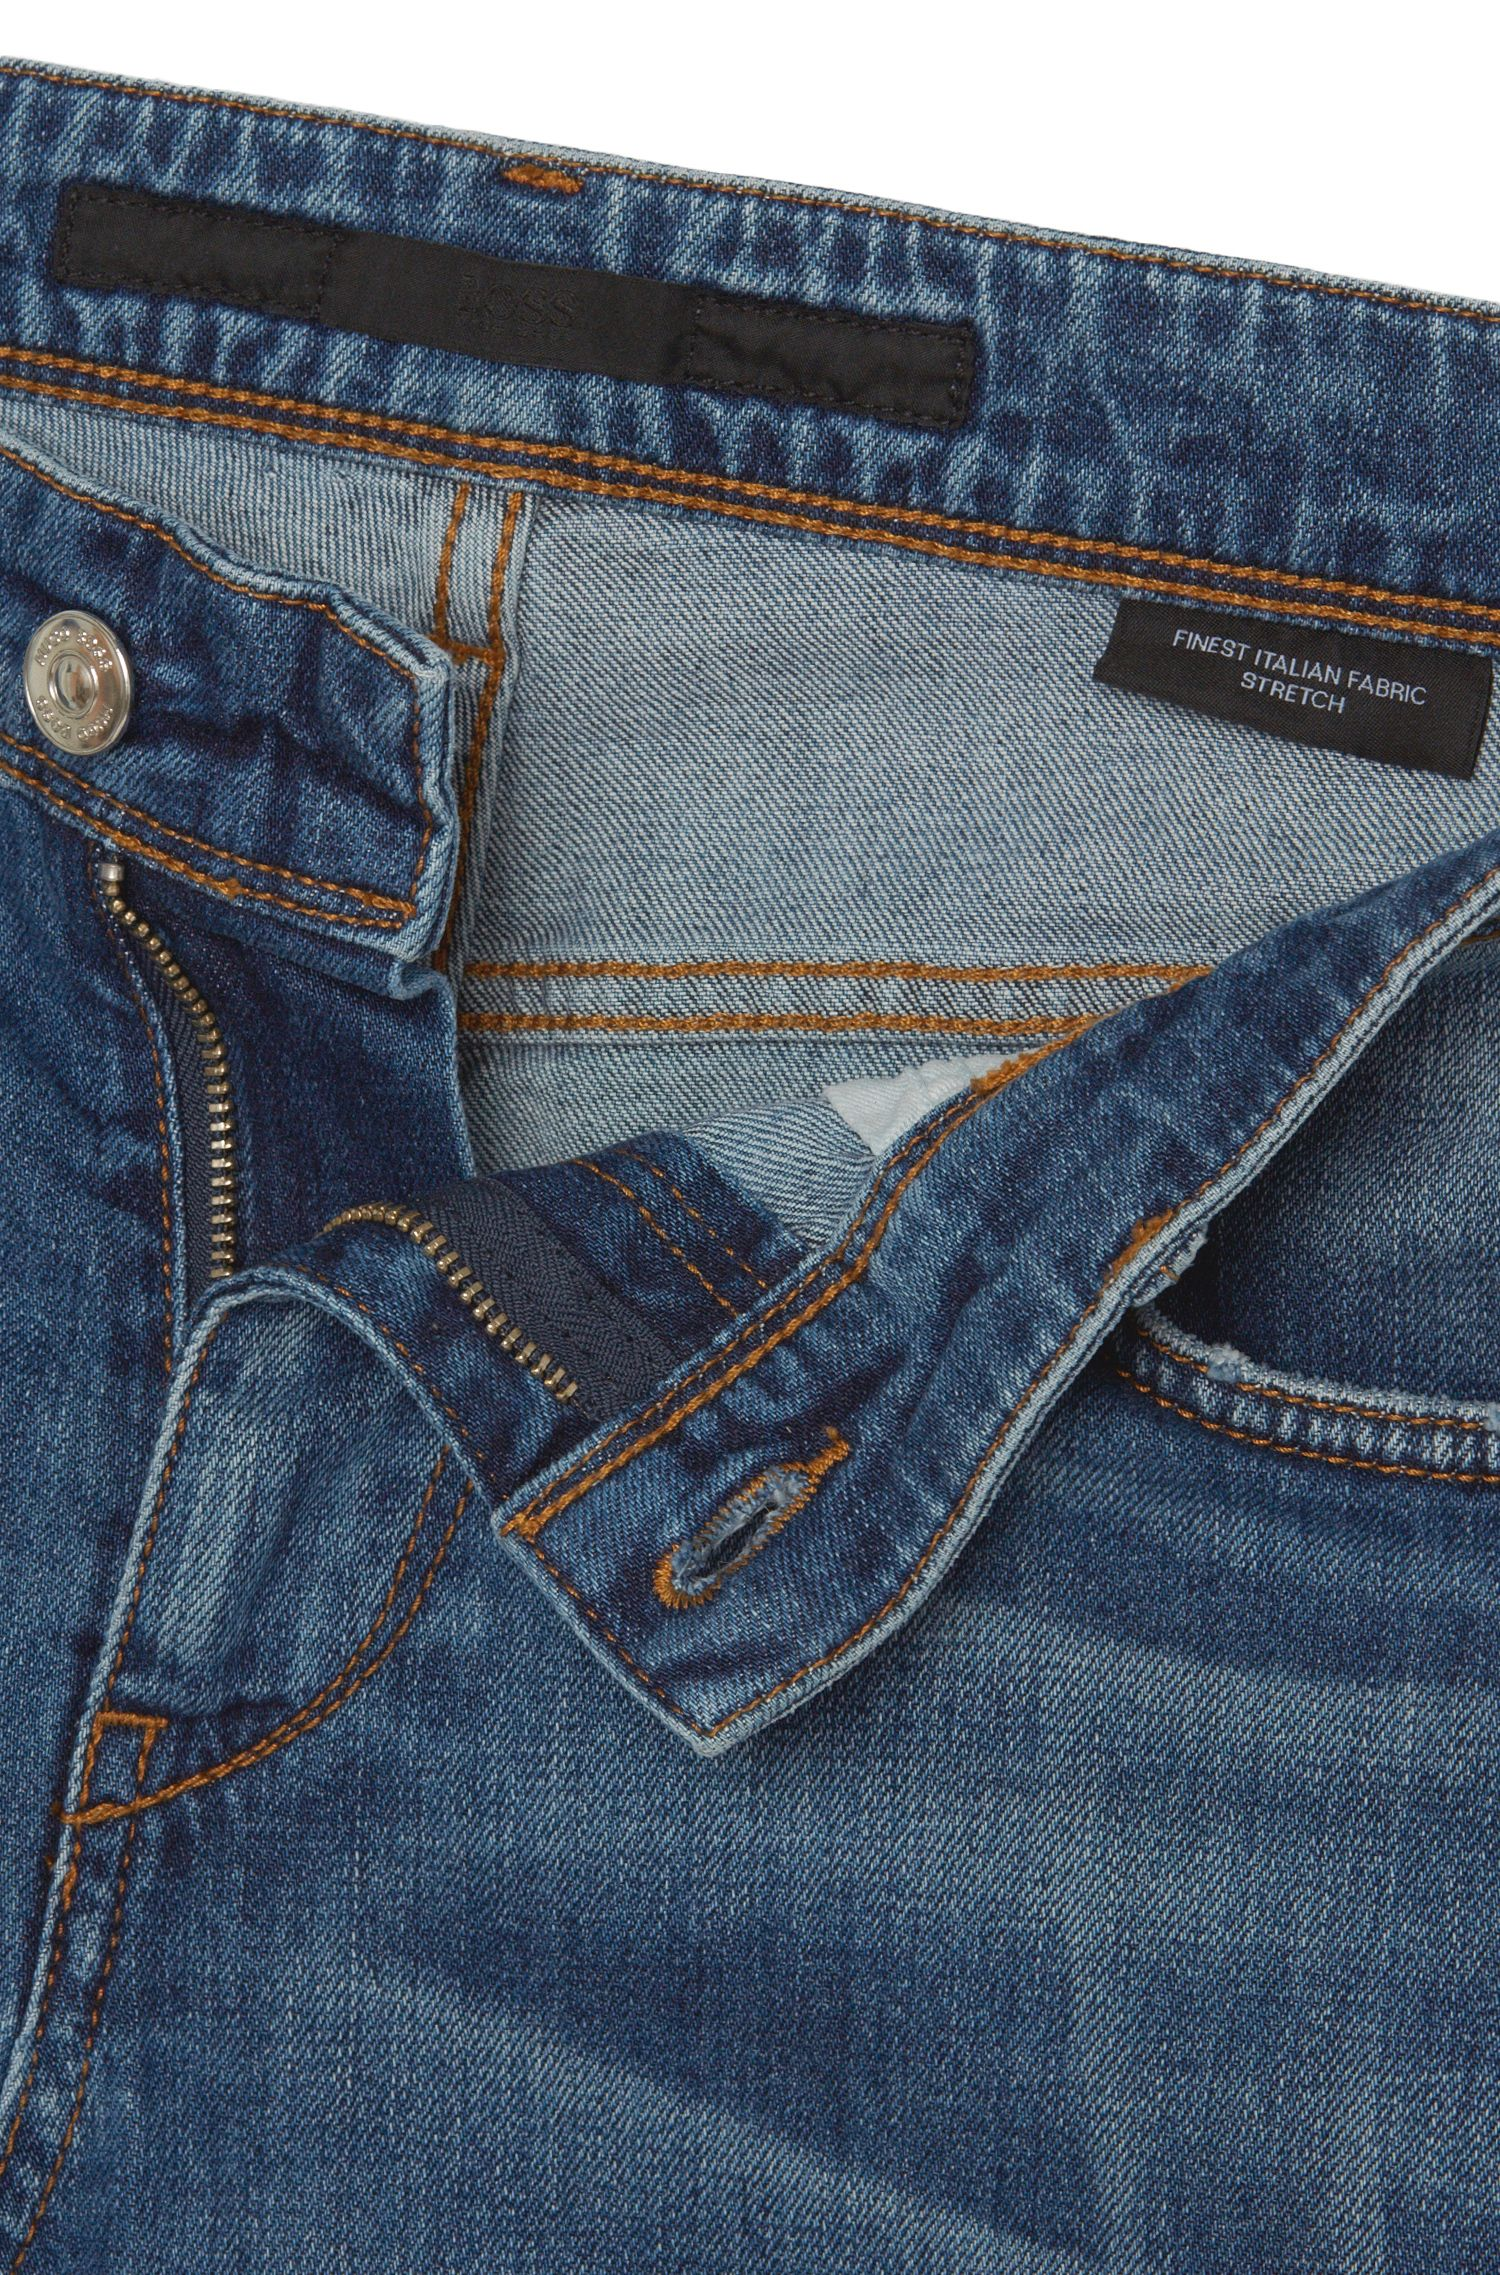 Italian Stretch Cotton Jeans, Slim Fit | Charleston WS